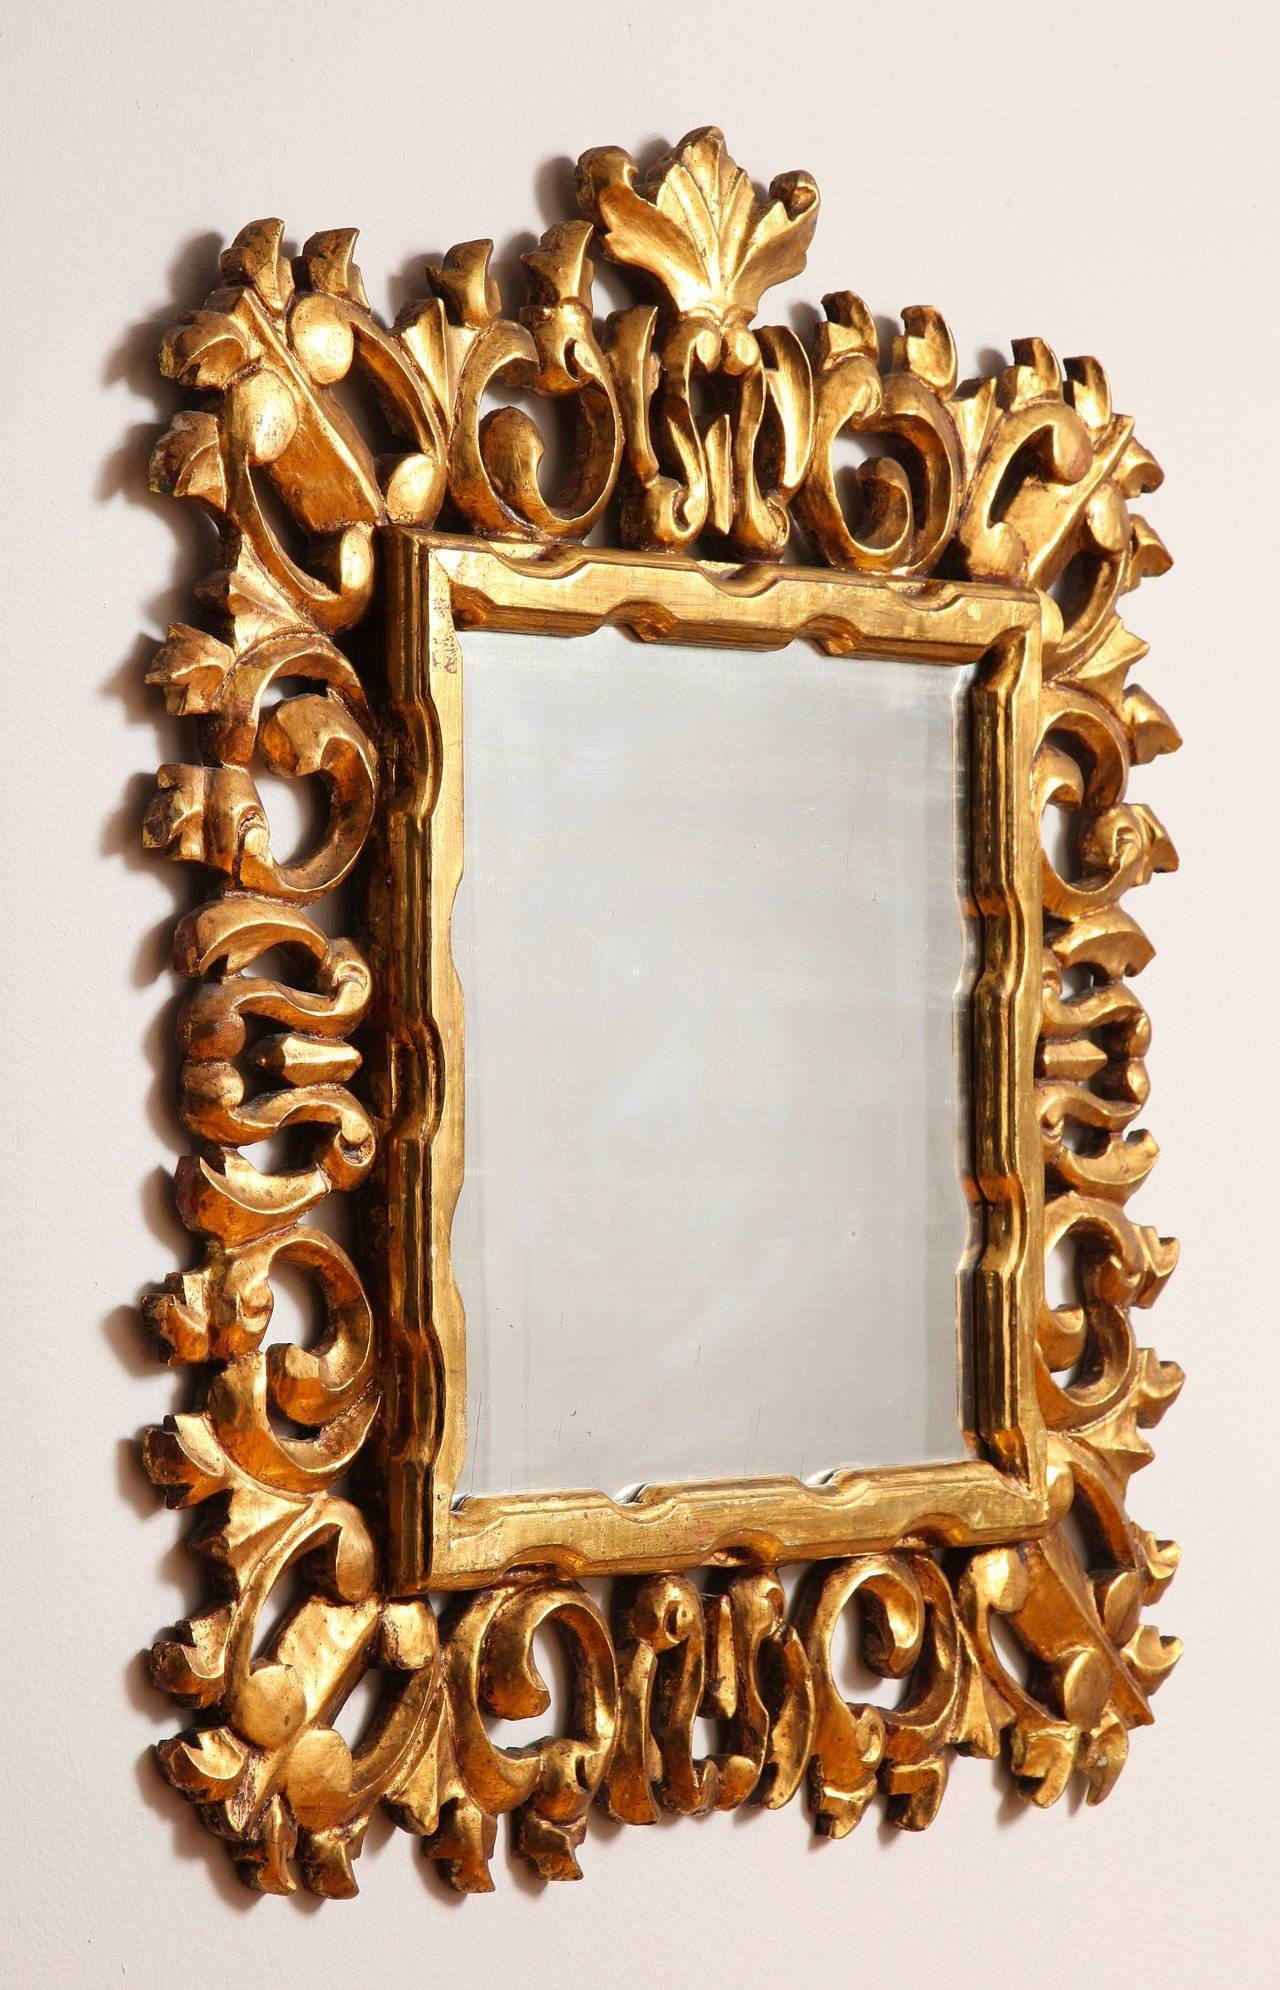 Carved And Gilded Italian Baroque Style Mirror Frame For Sale At with regard to Baroque Style Mirrors (Image 11 of 25)